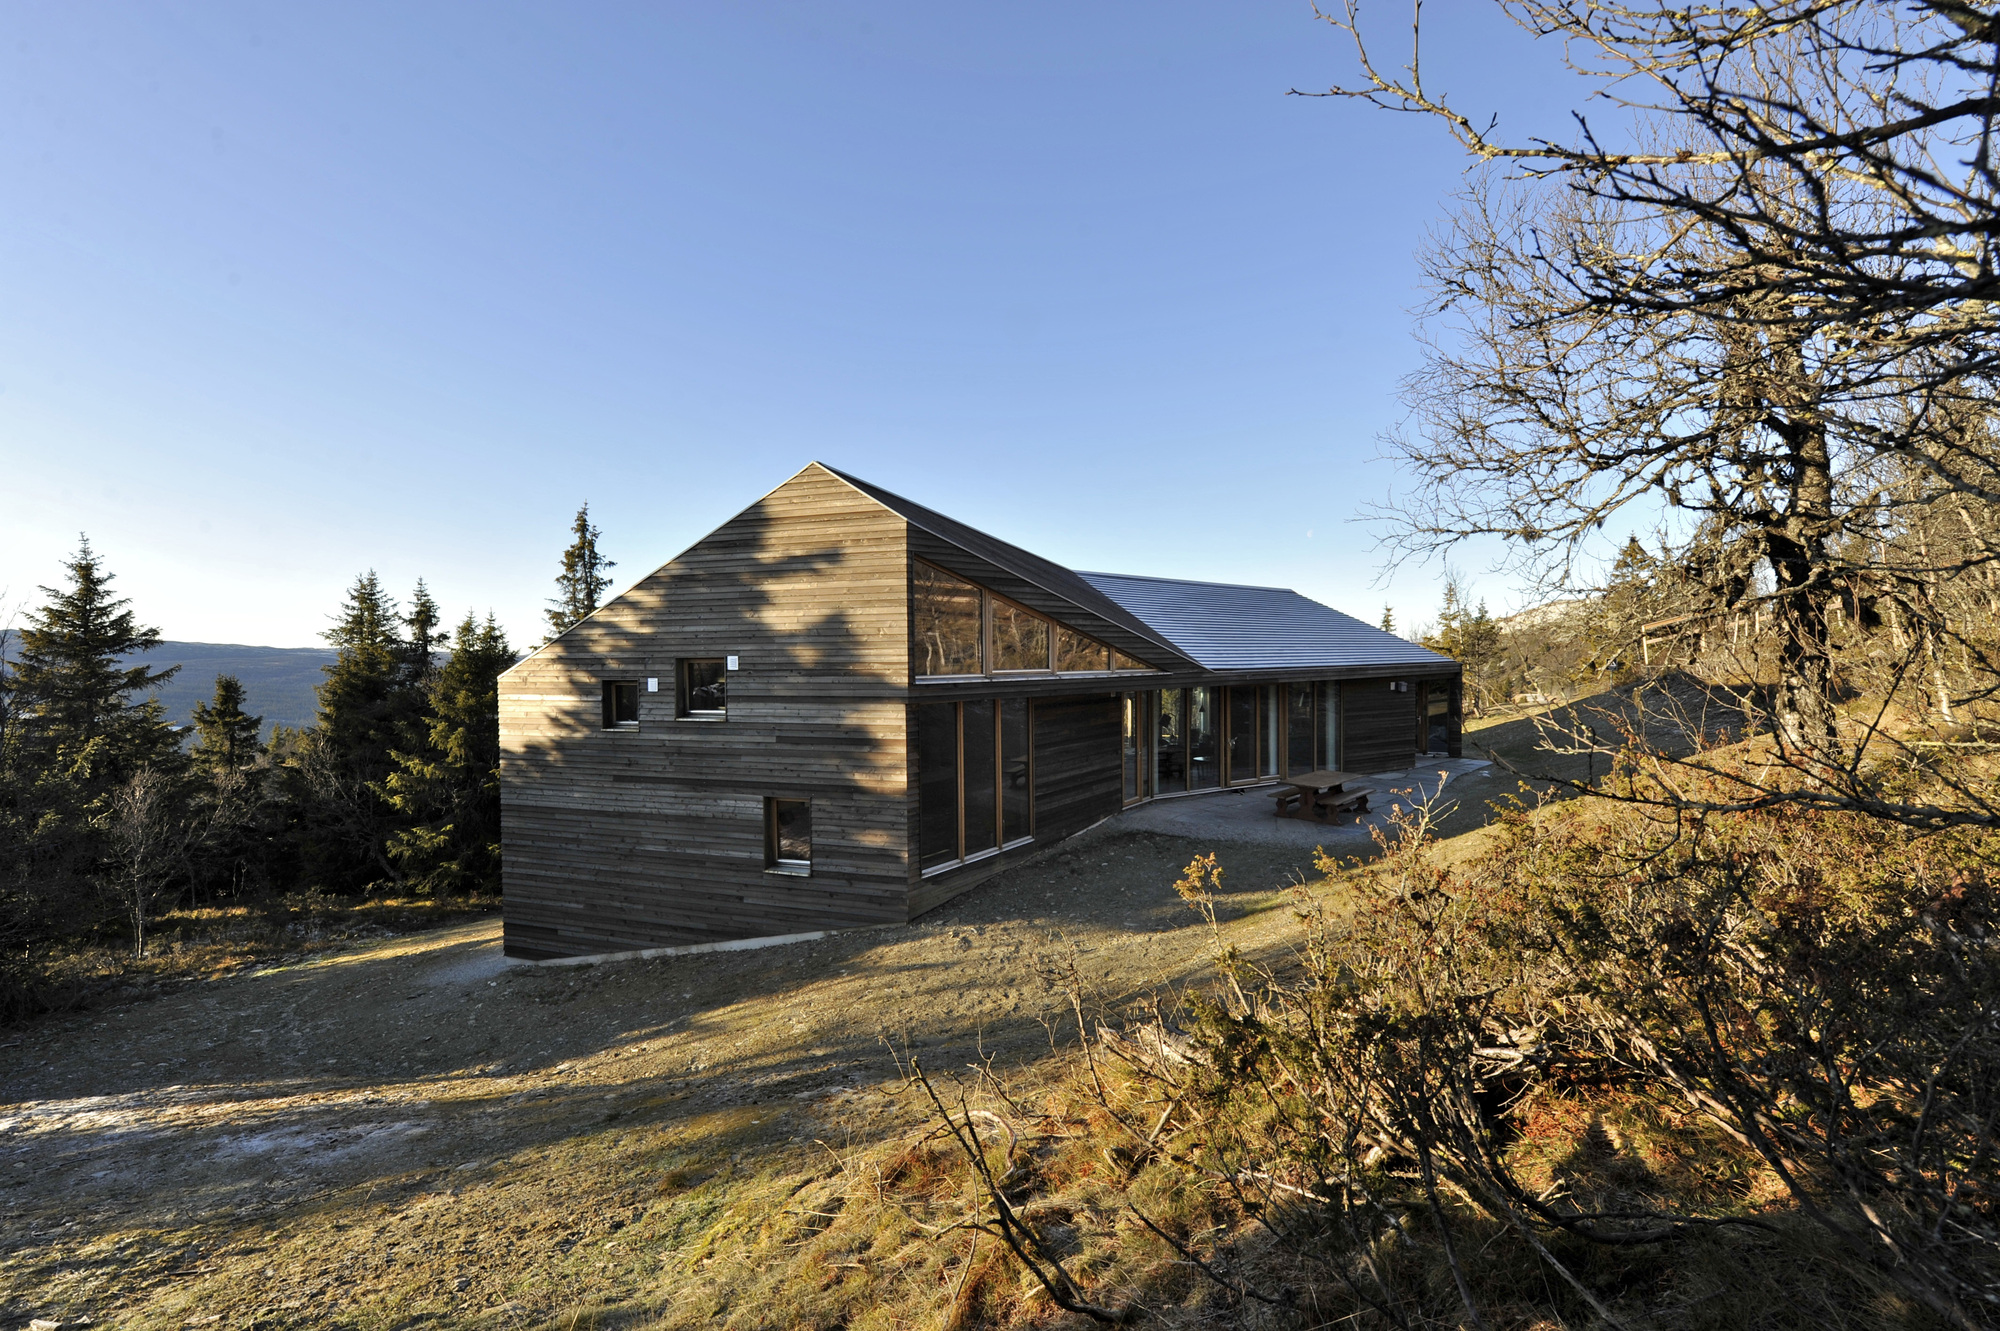 Twisted House / JVA, © Nils Petter Dale